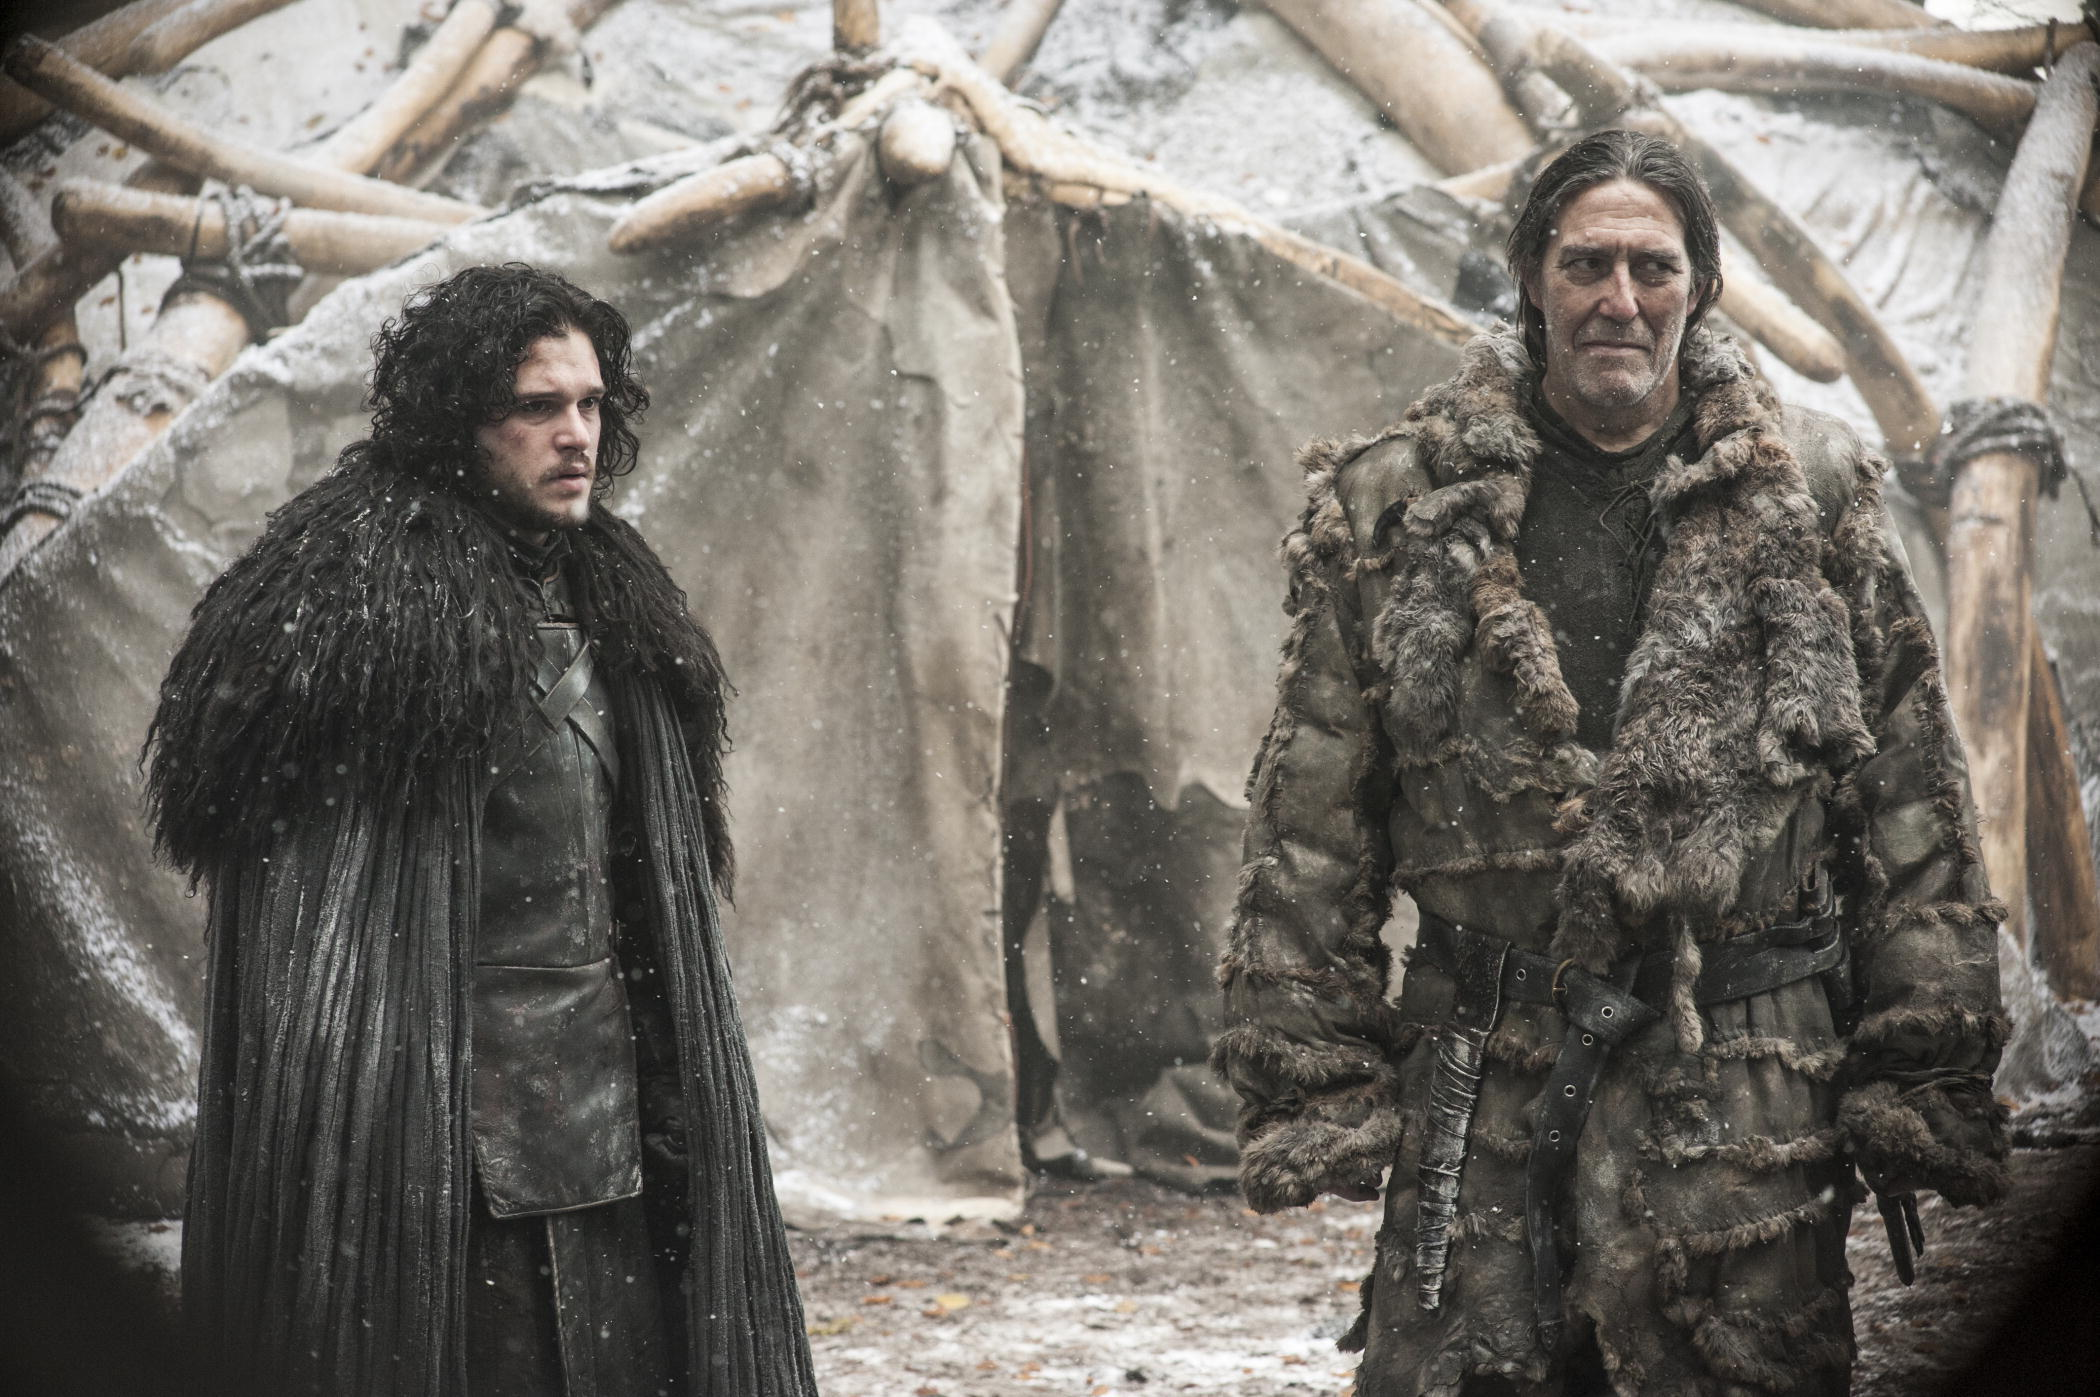 "In this image released by HBO, Jon Snow, portrayed by Kit Harington, left, appears with Mance Rayder, portrayed by Ciaran Hinds in a scene from season four of ""Game of Thrones."" The season five premiere airs on Sunday. (AP Photo/HBO, Helen Sloan) 